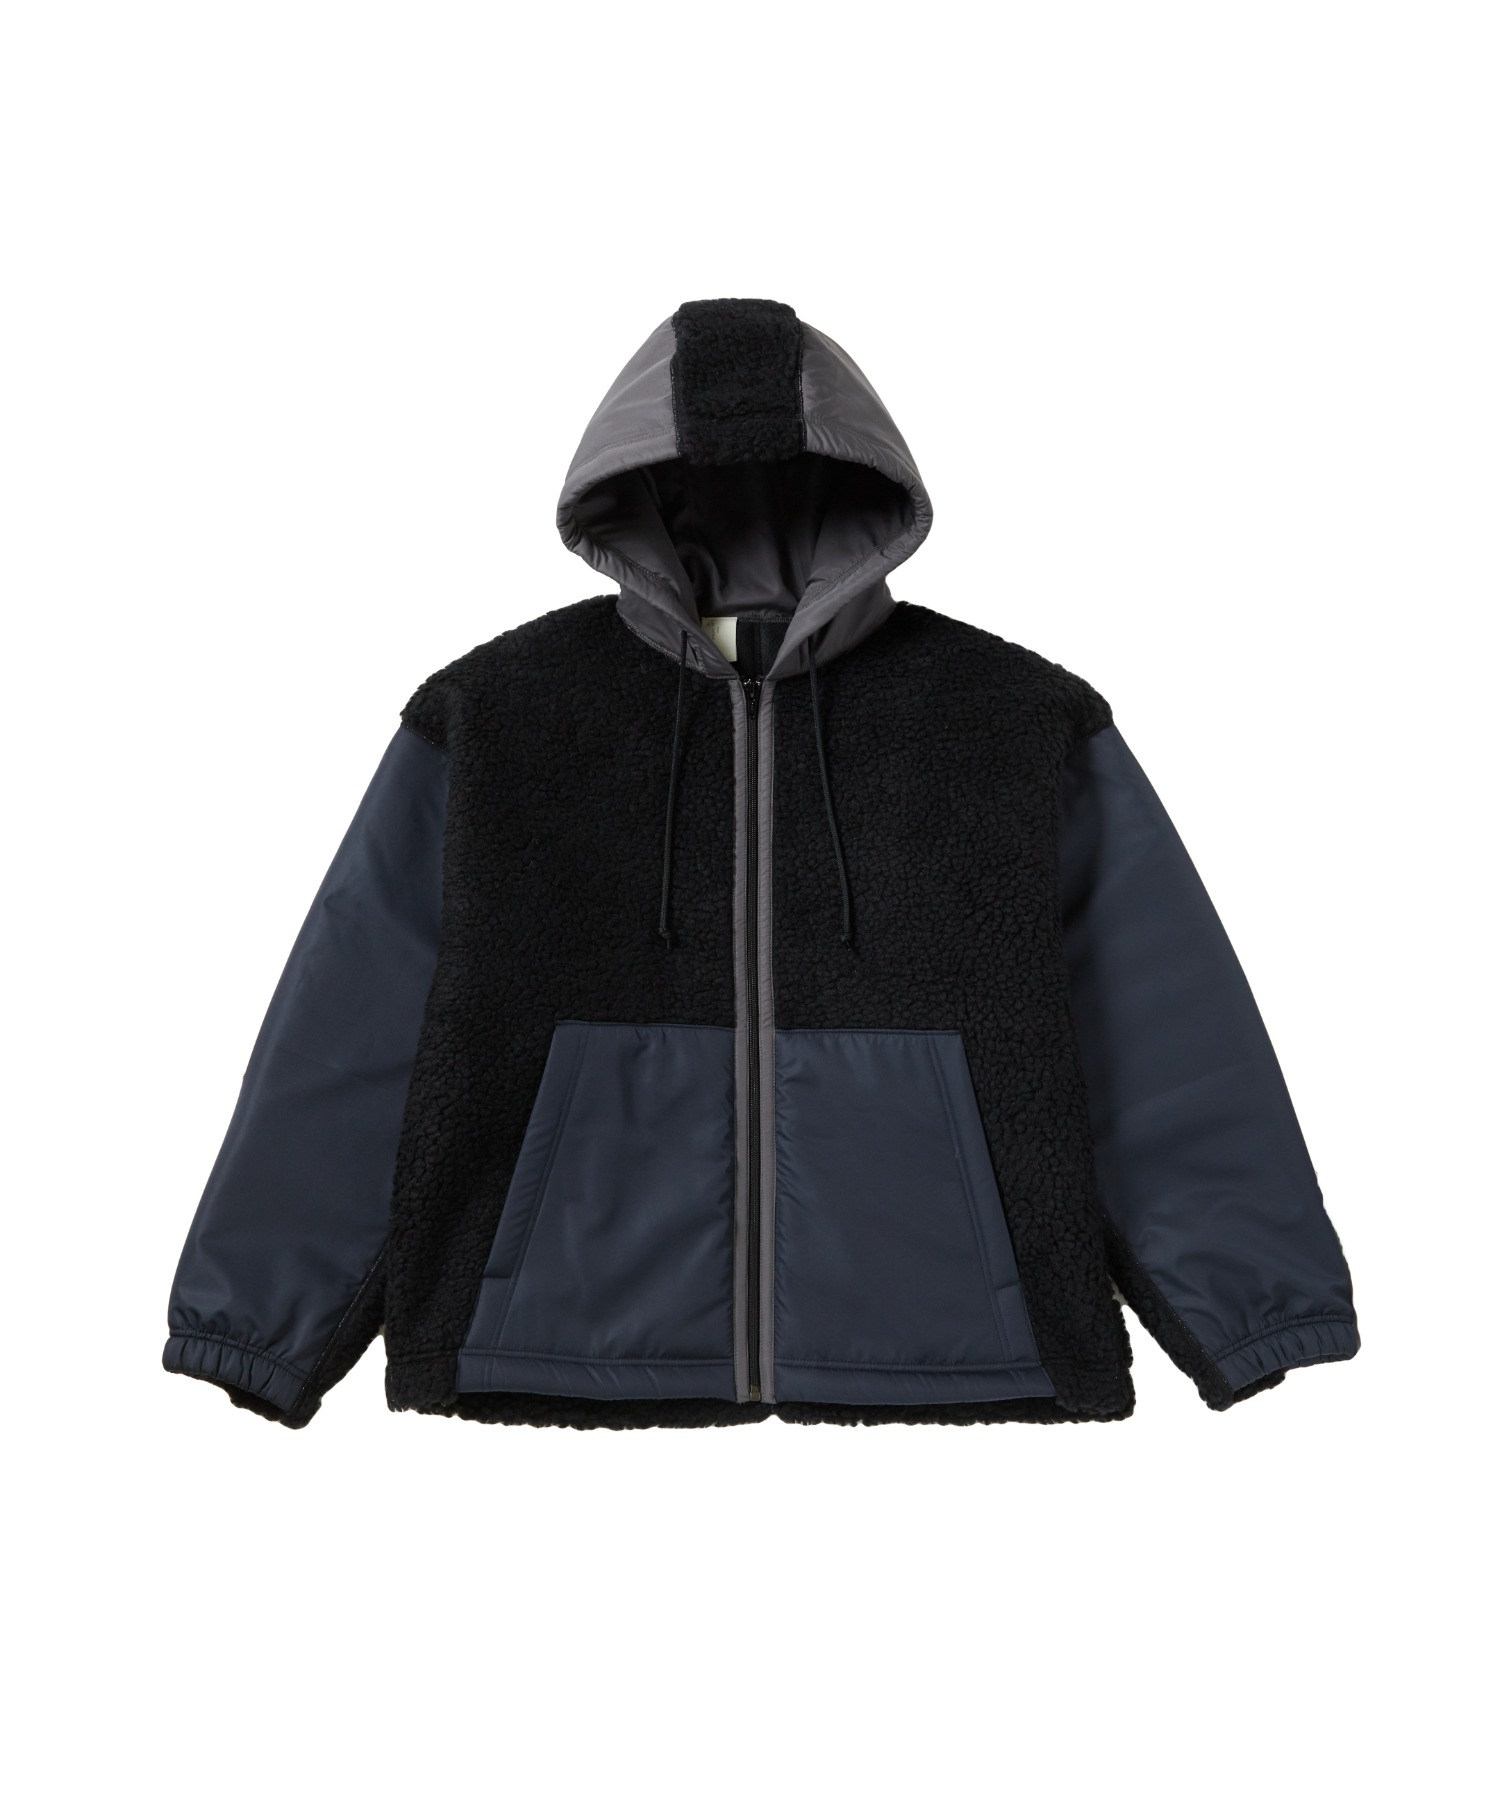 FALL2020 HOODED BLOUSON